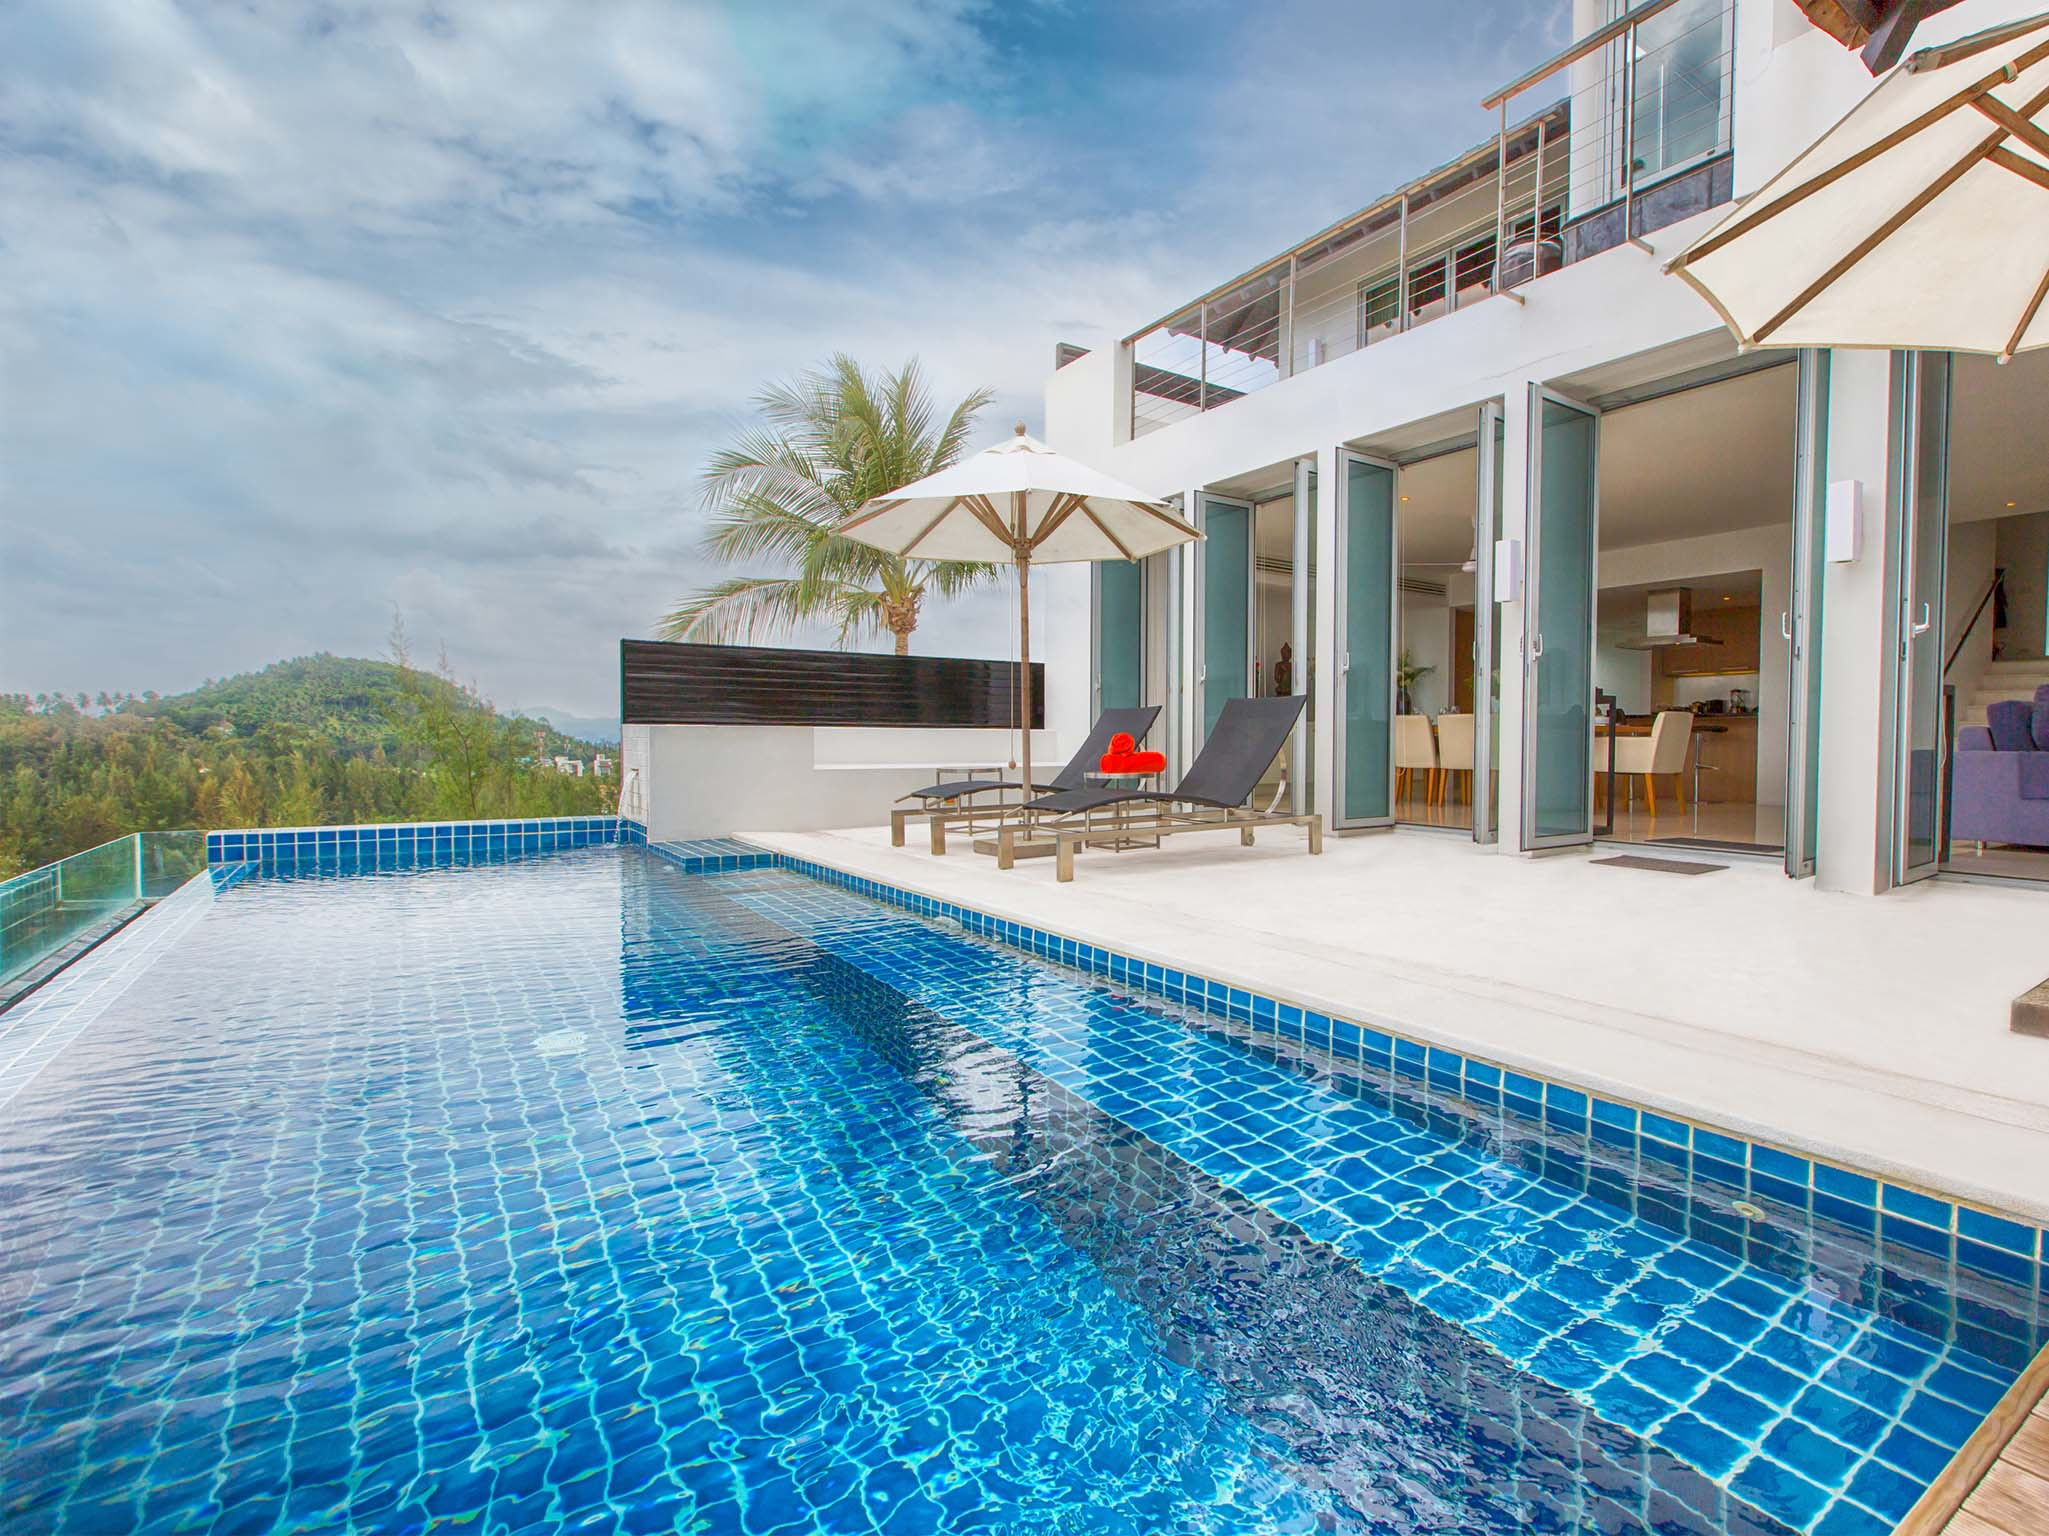 Inviting And Relaxing Holiday Wellness Villa